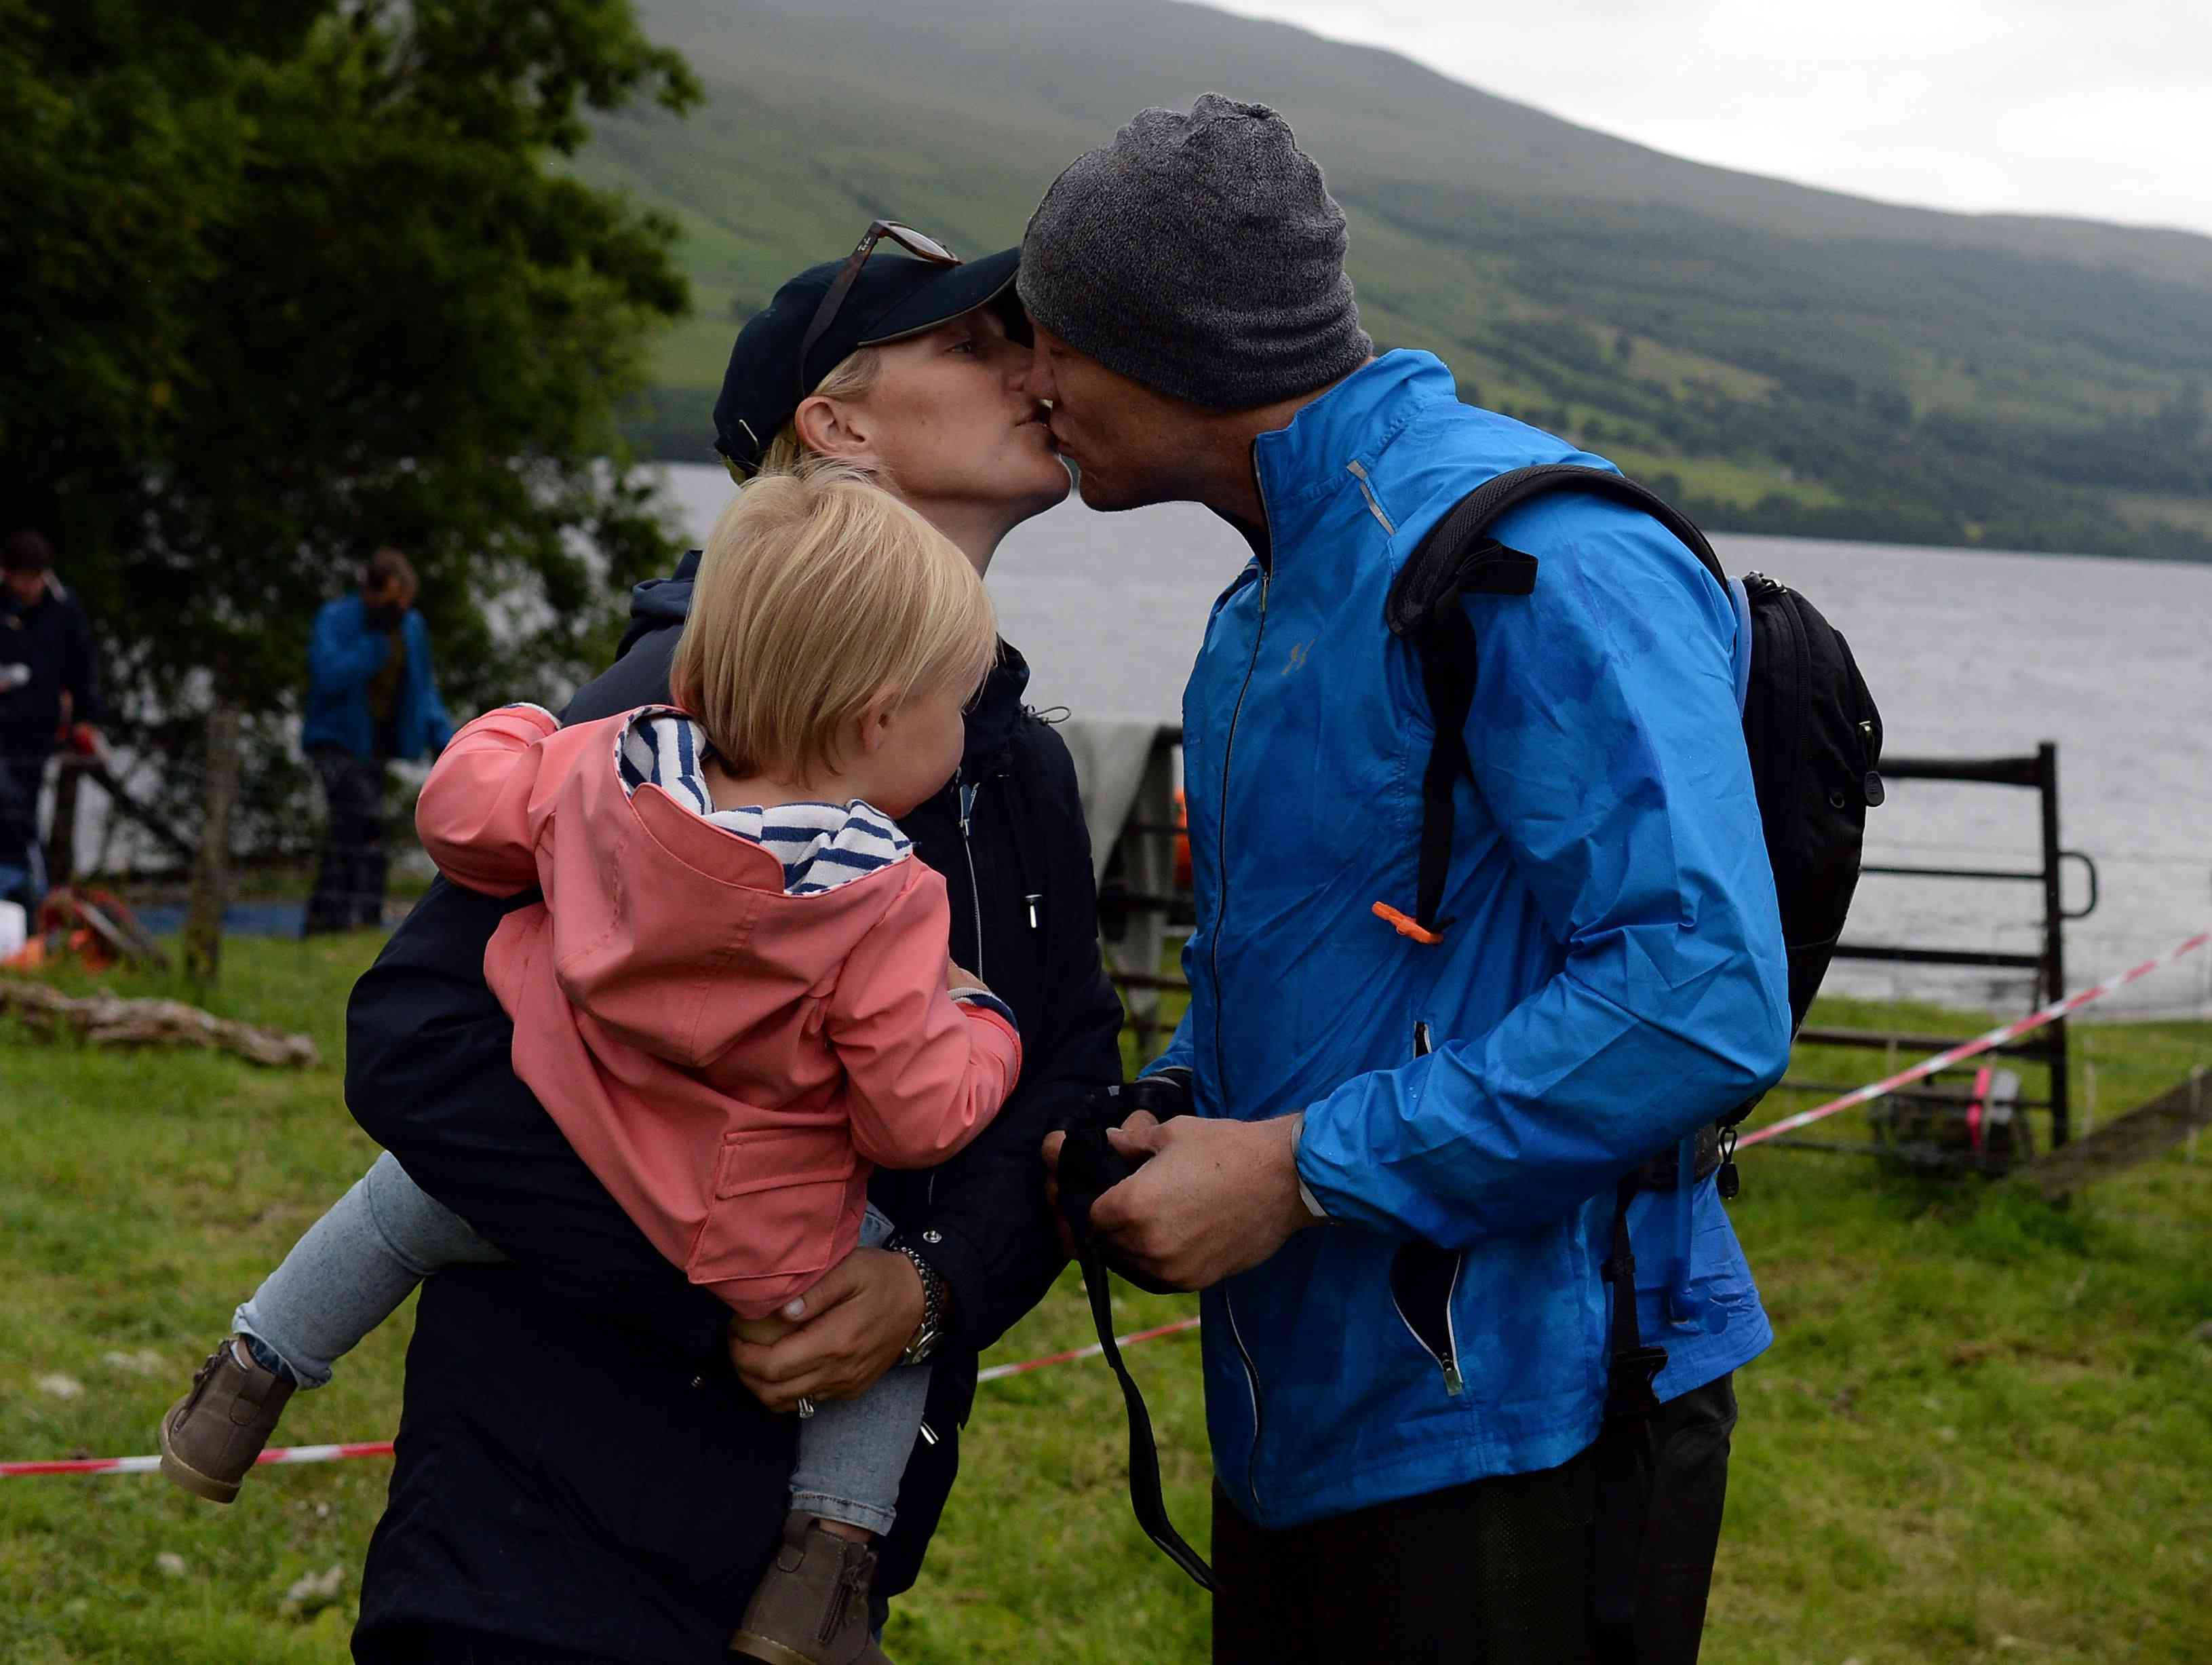 Mike and Zara Tindall Relationship Timeline